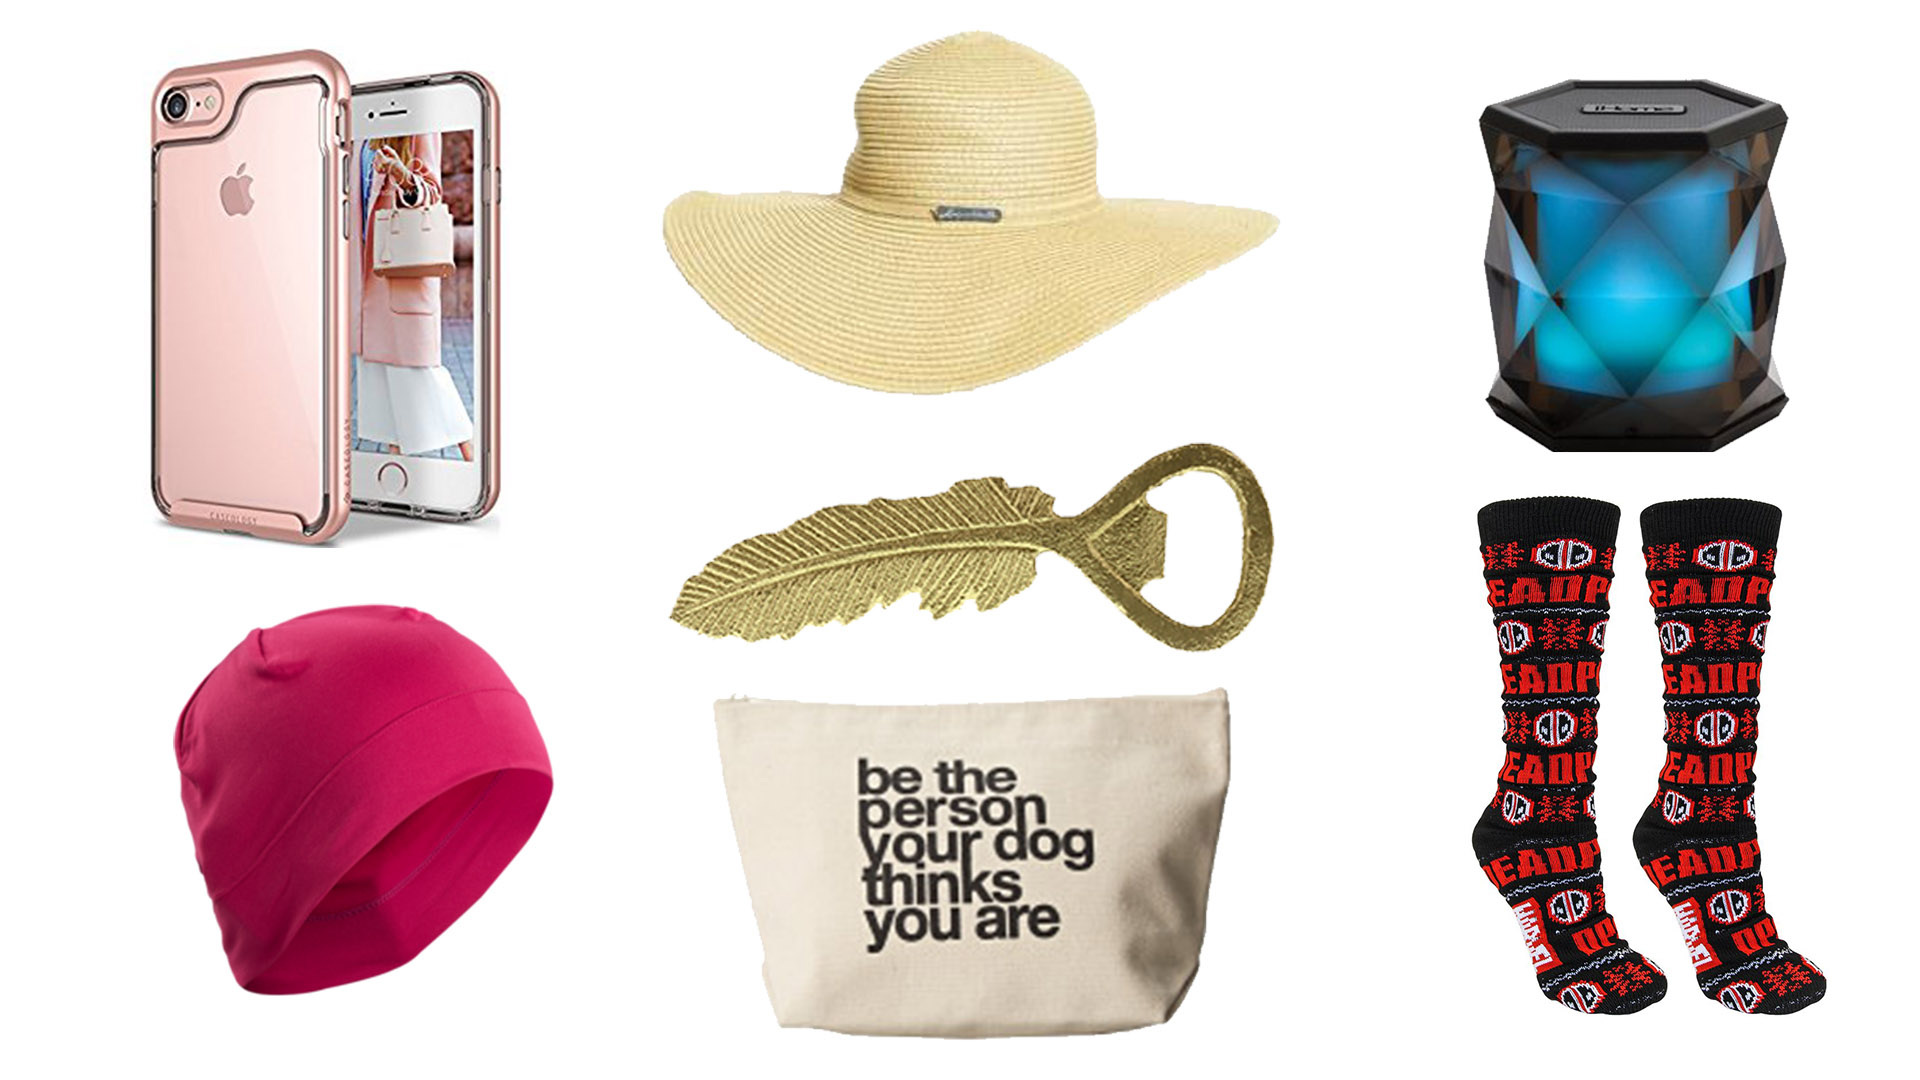 Best Gifts Under 25 stocking stuffers: the best gift ideas under $25 - today